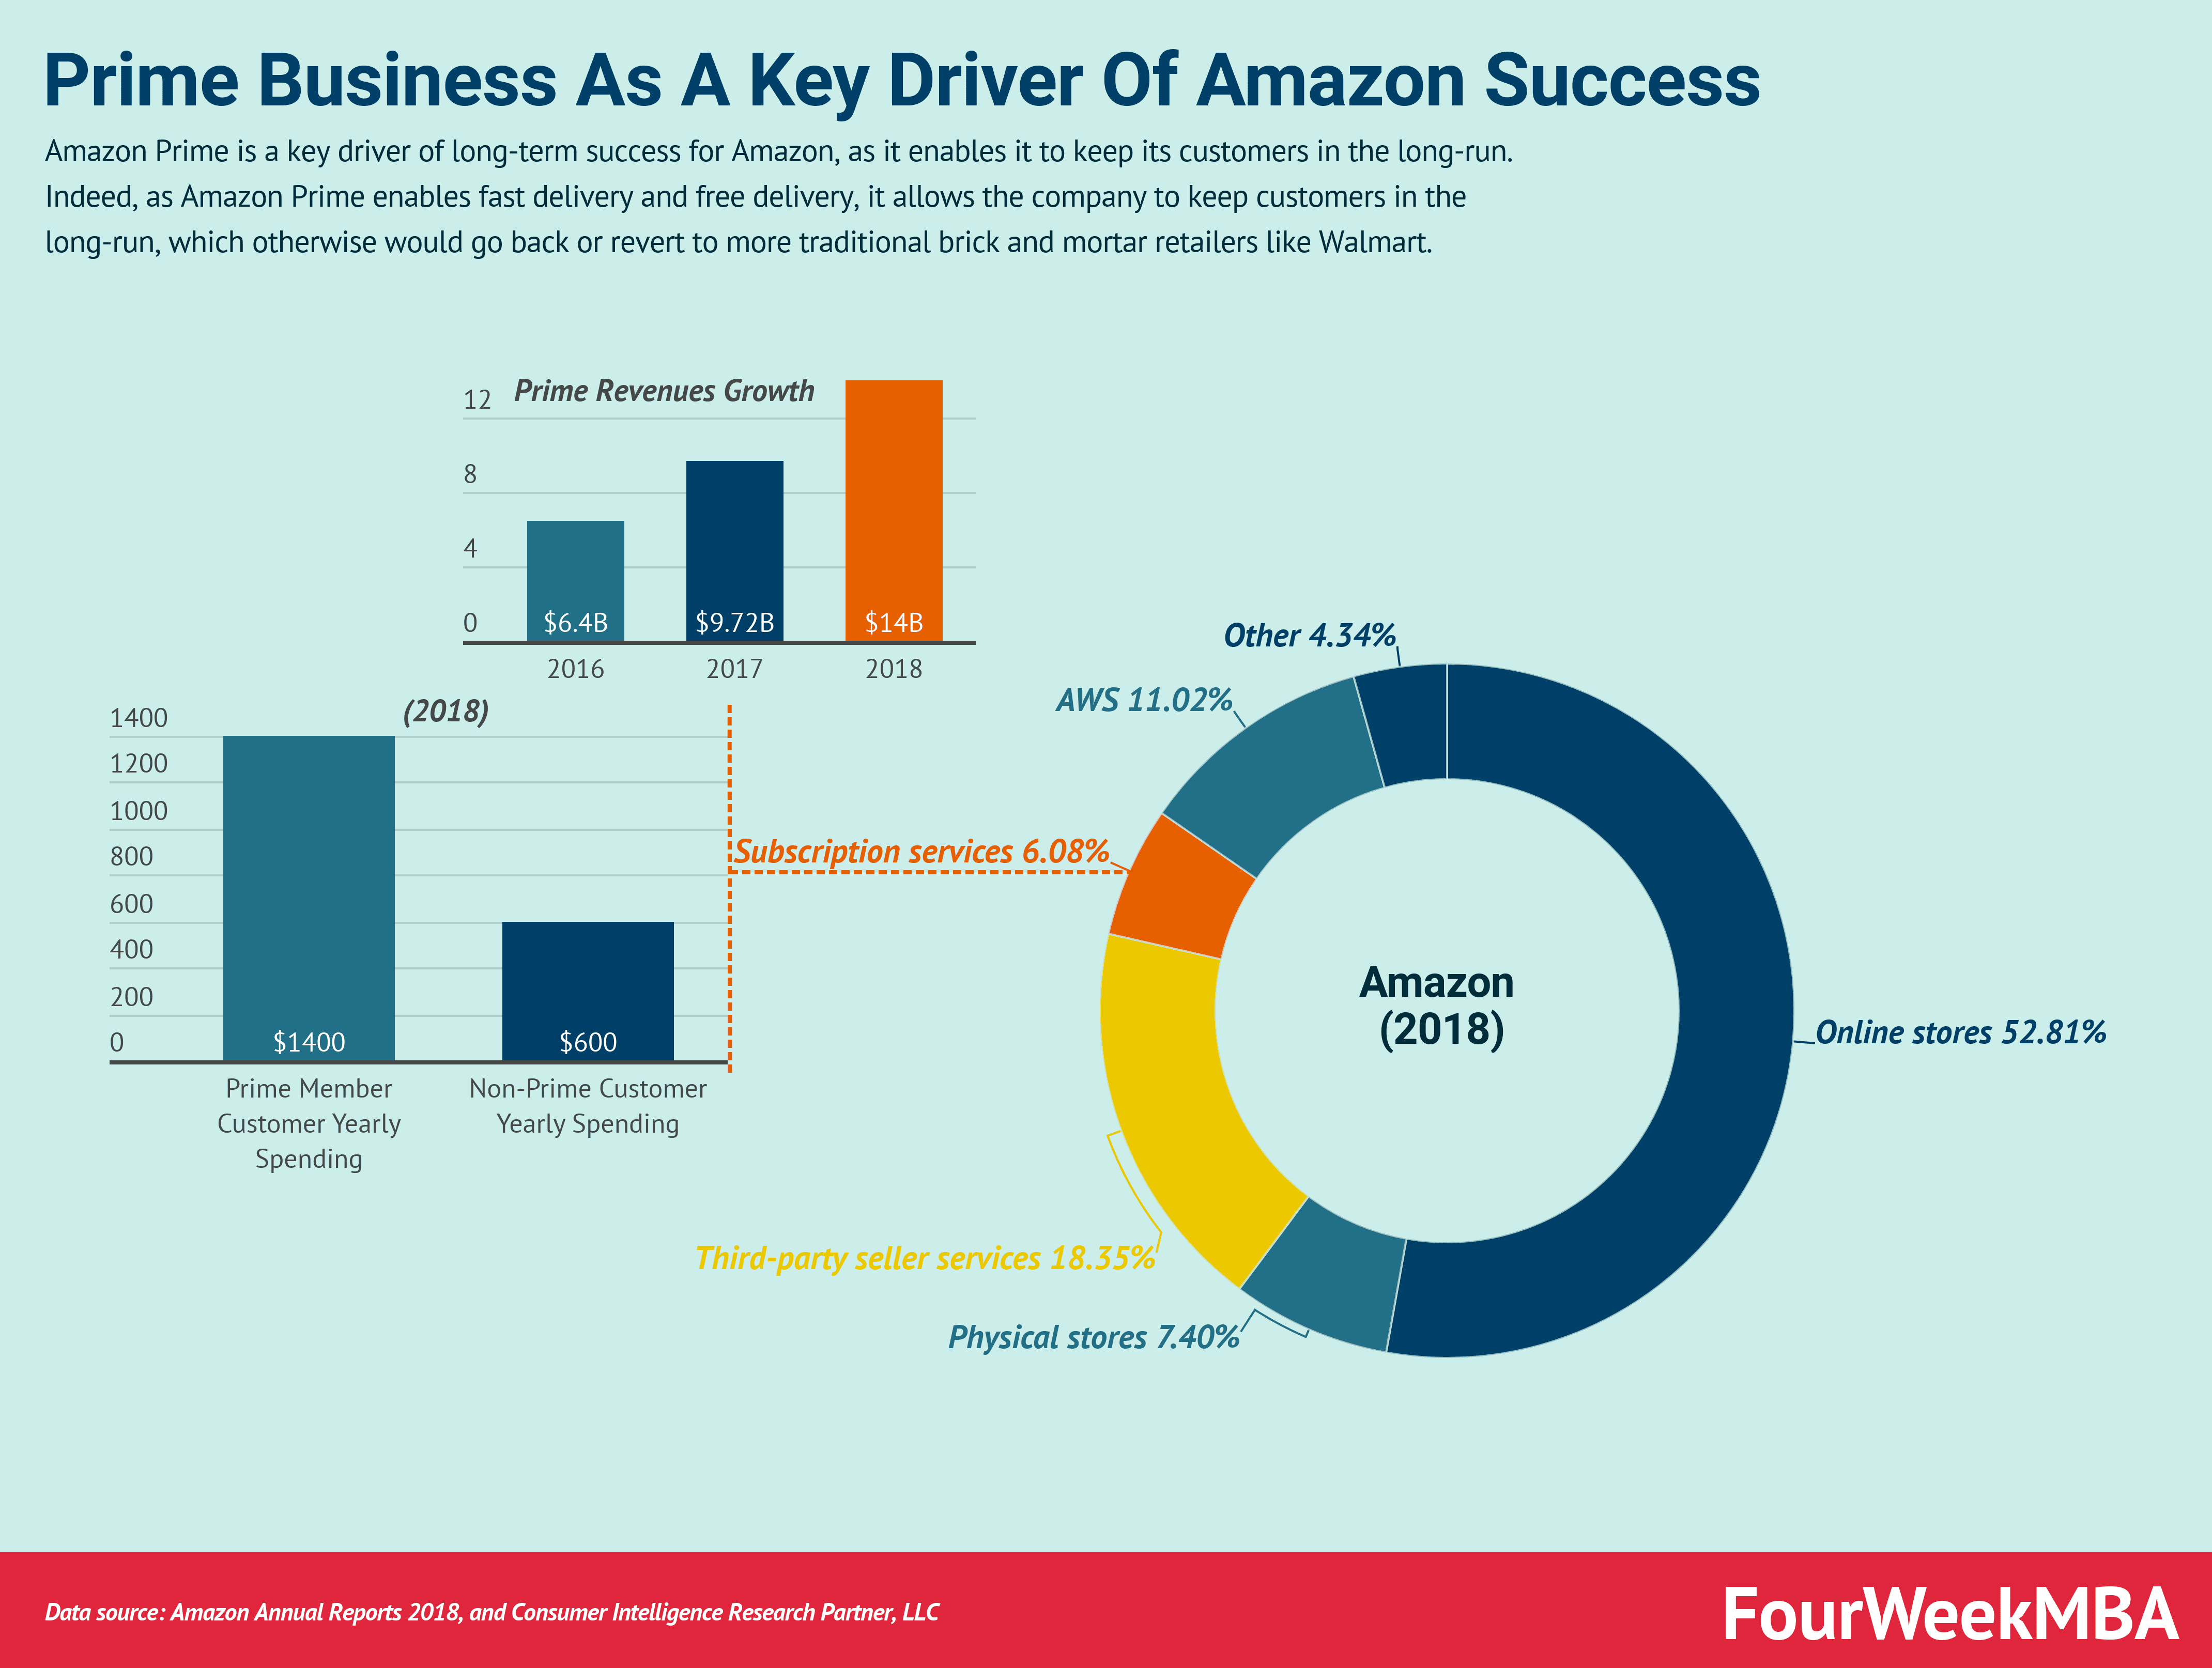 Why Amazon Prime Is The Key To Amazon Business Model Long-Term Success